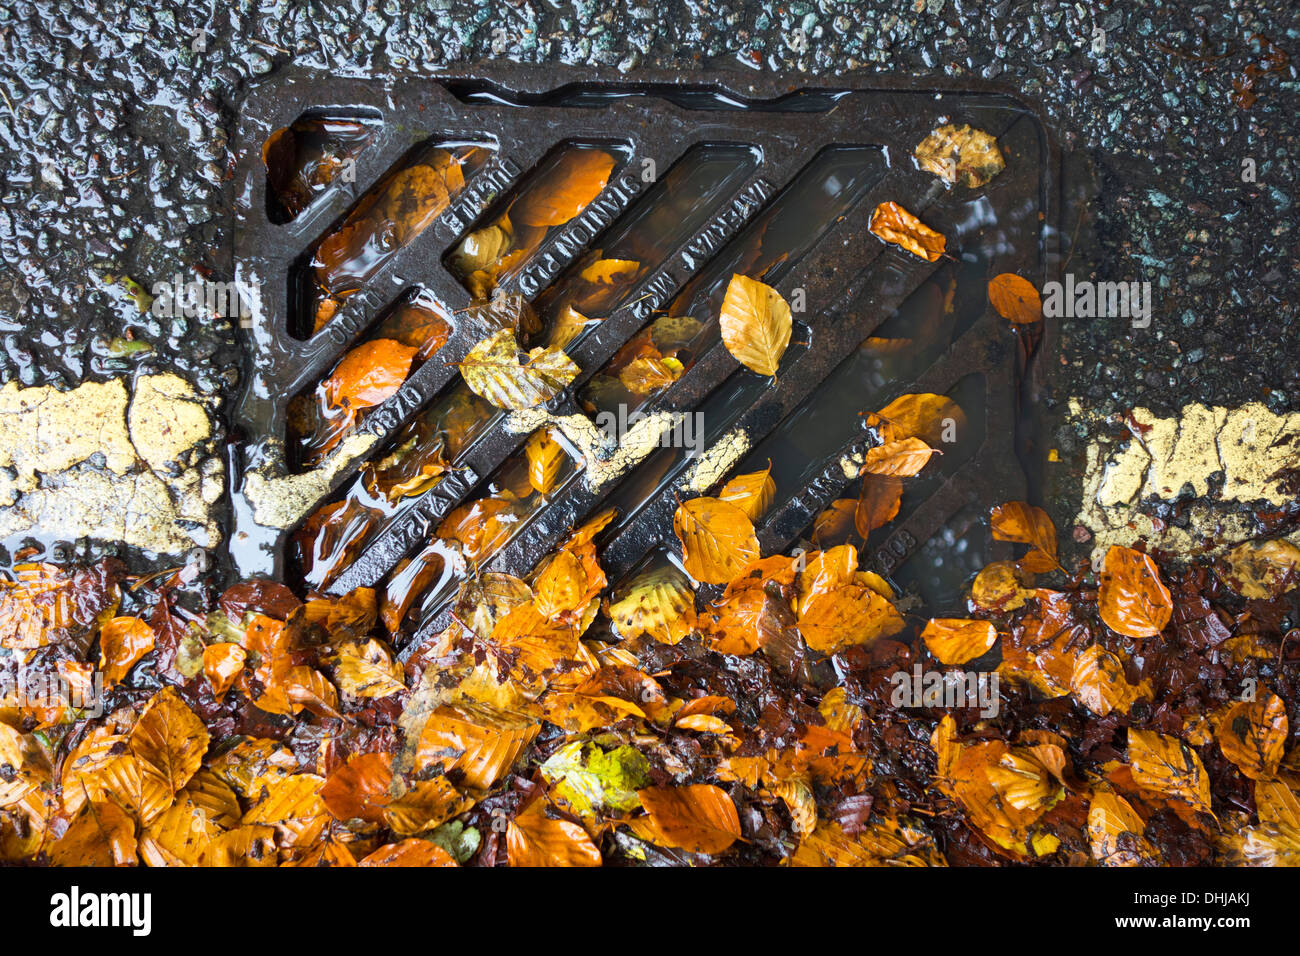 A drain blocked with fallen leaves. Stock Photo